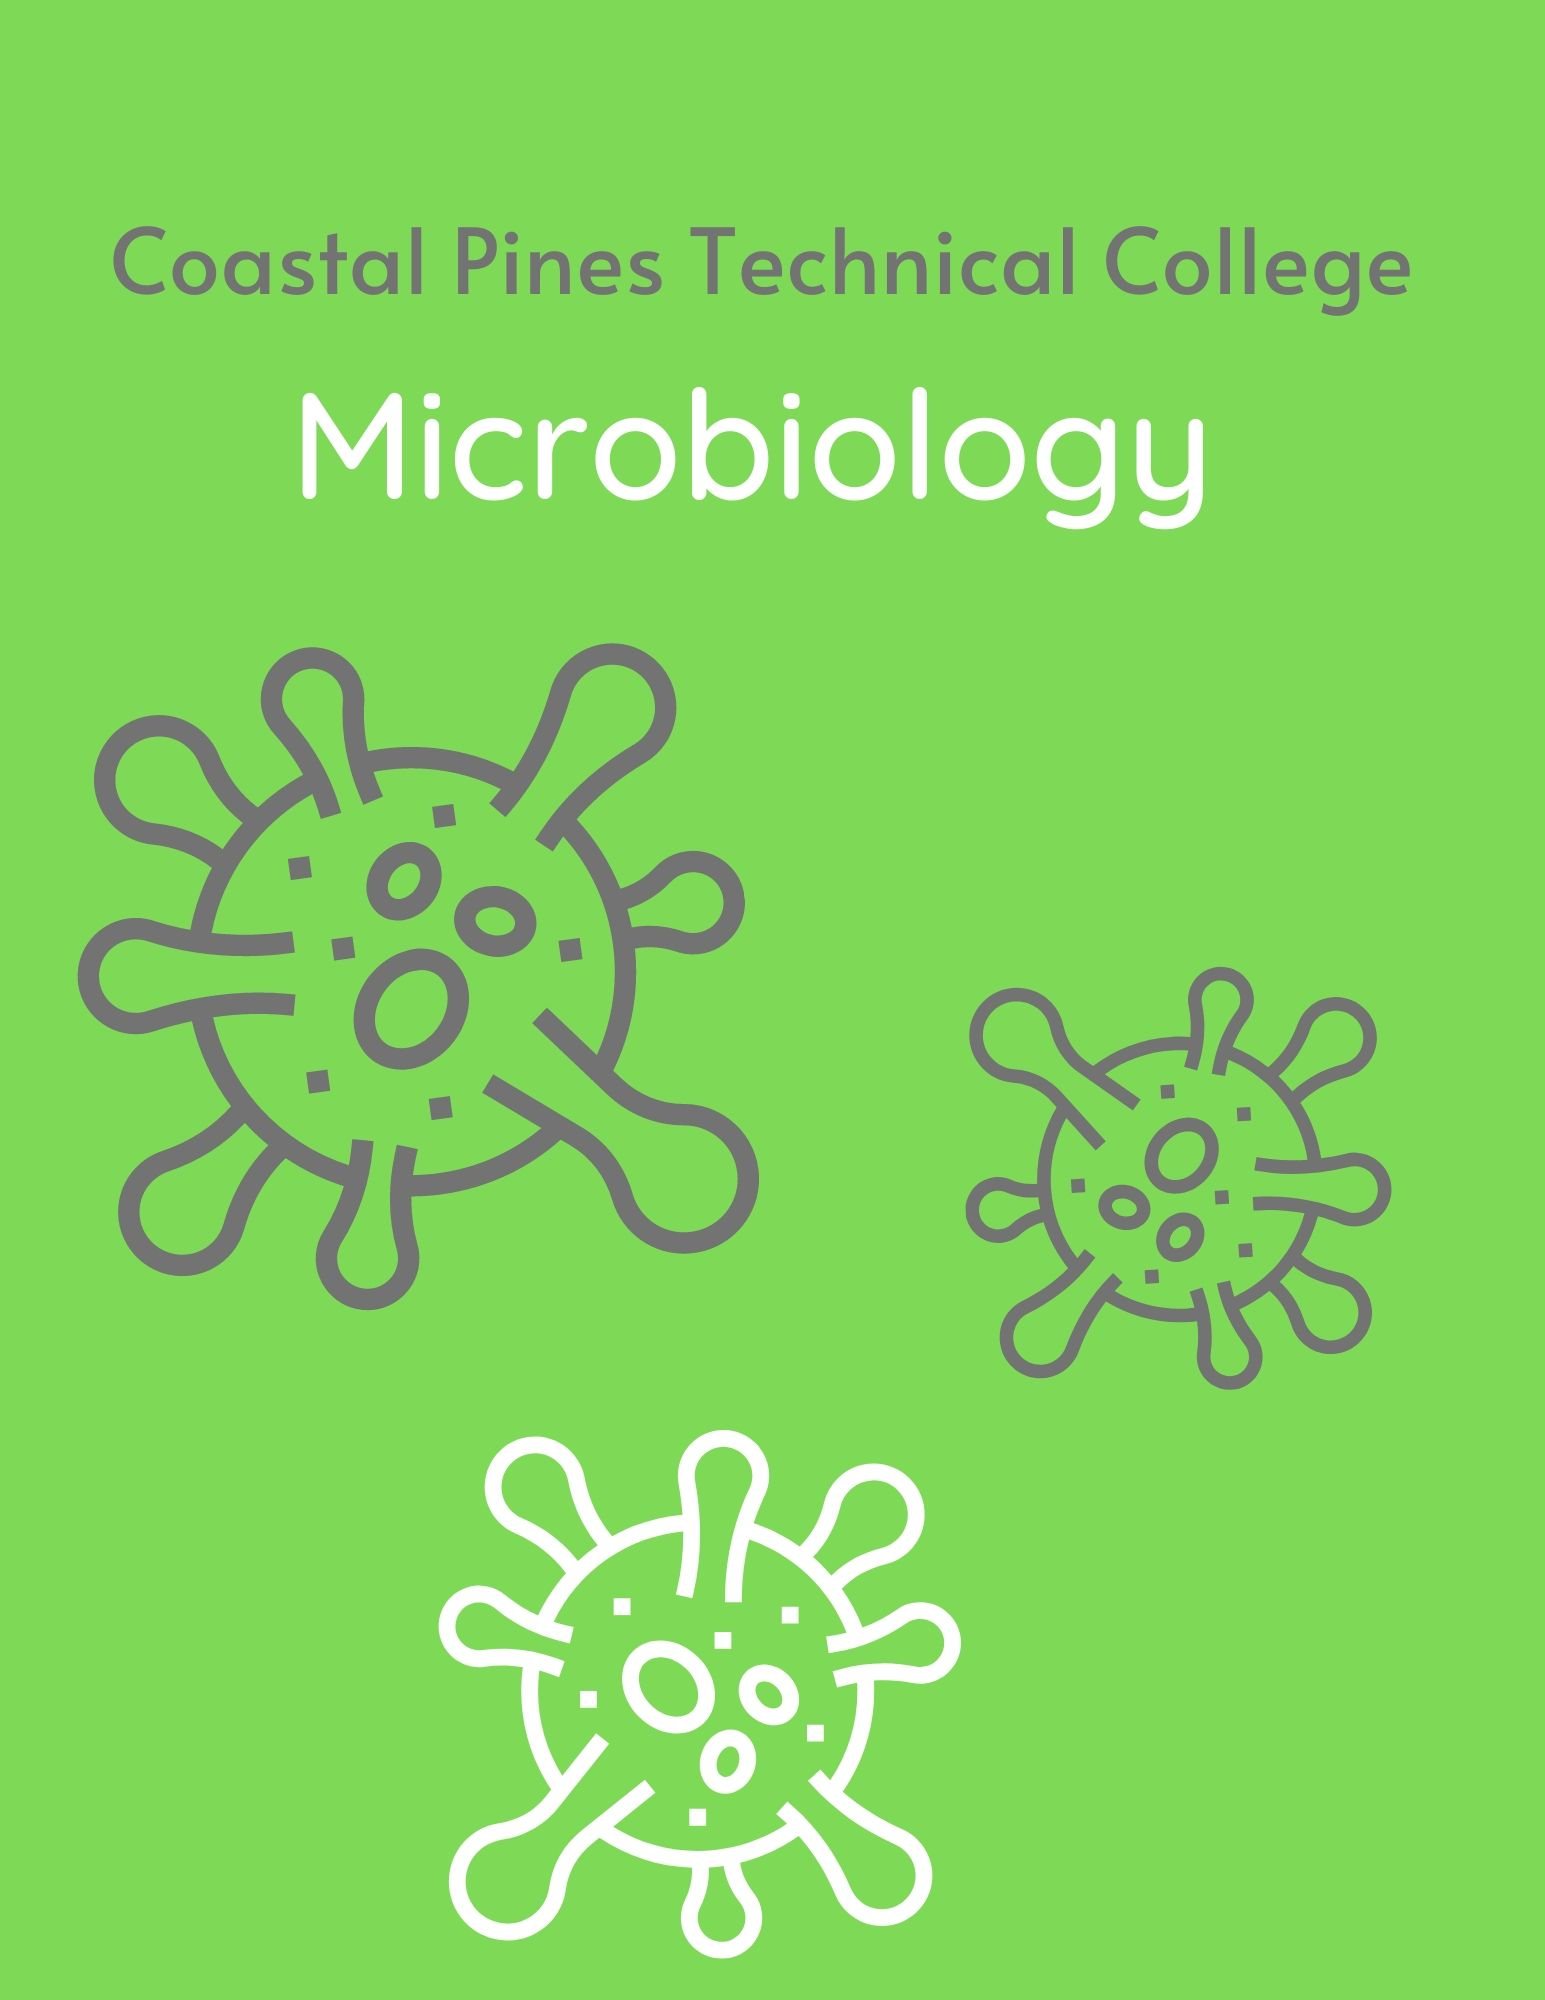 Coastal Pines Technical College Microbiology